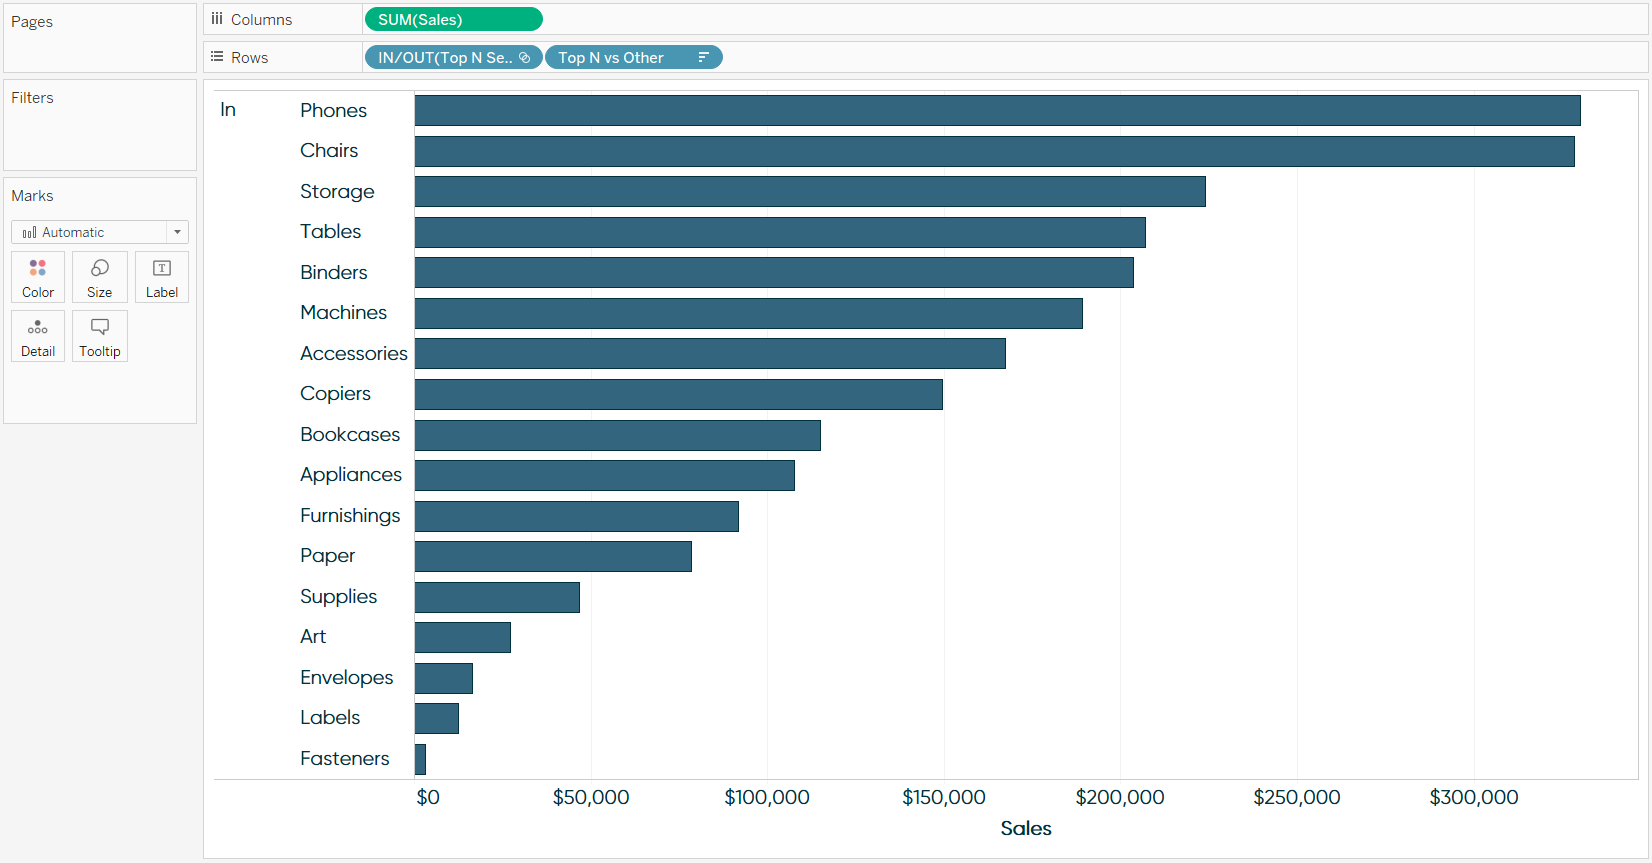 Sales by Top N vs Other Bar Chart in Tableau